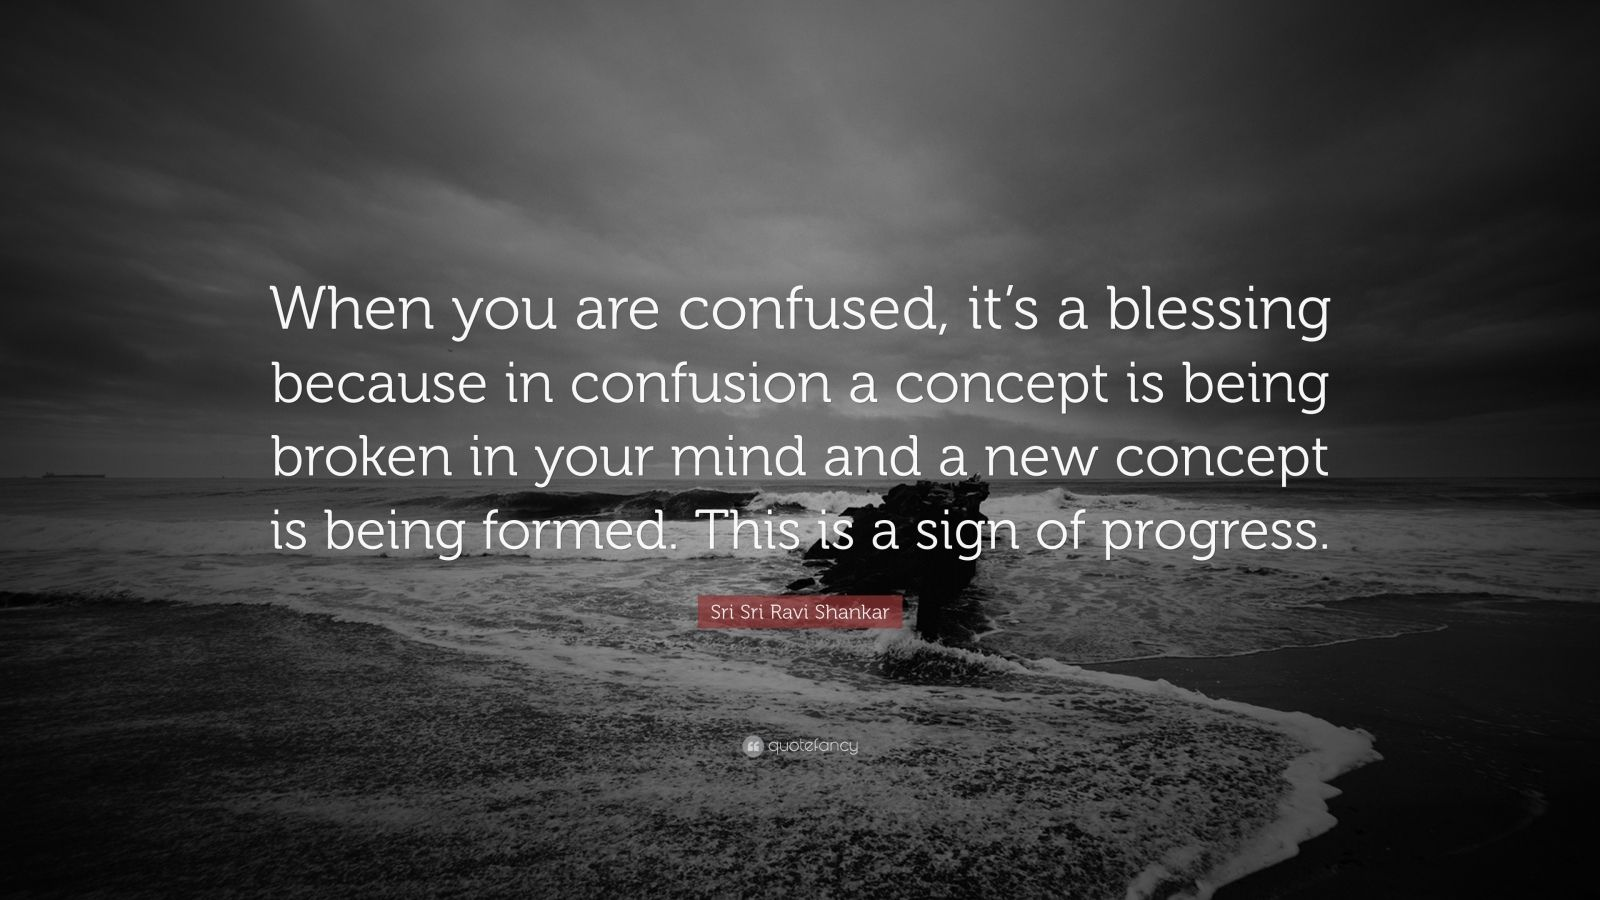 "Sri Sri Ravi Shankar Quote: ""When you are confused, it's a blessing because in confusion a concept is being broken in your mind and a new concept is being formed. This is a sign of progress."""